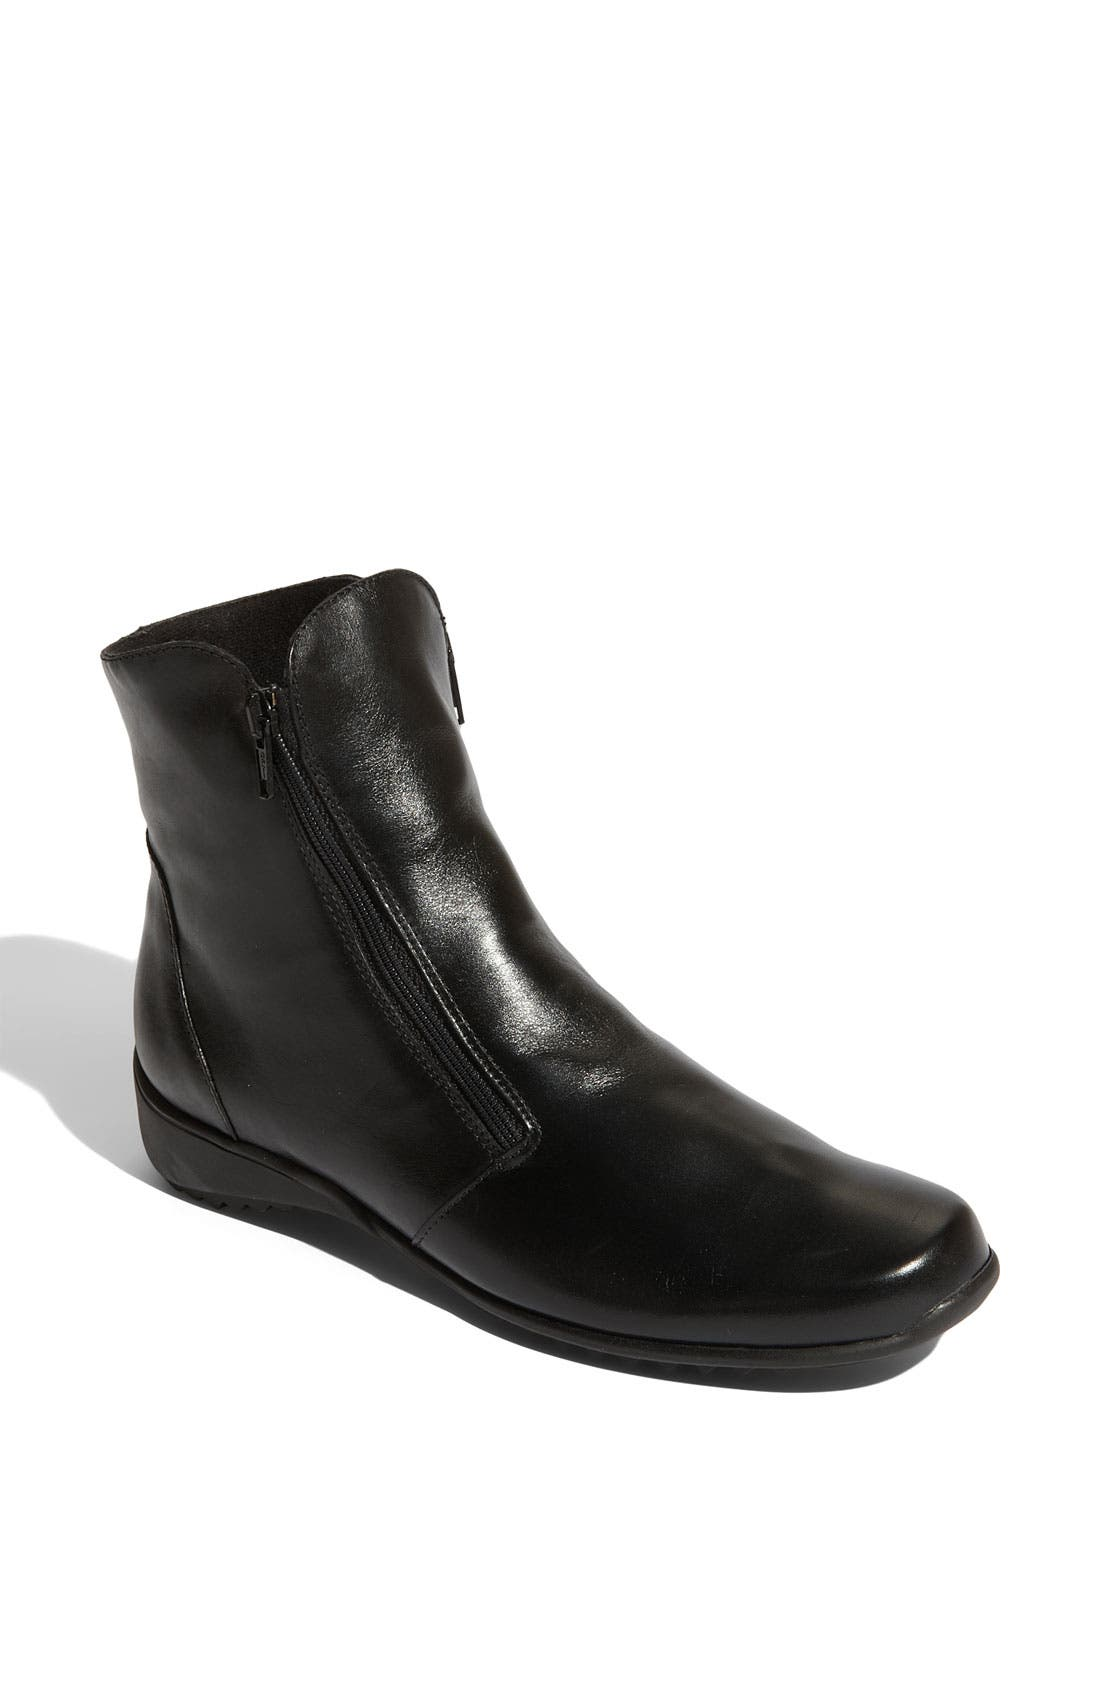 Alternate Image 1 Selected - Munro 'Drifter' Boot (Special Purchase)